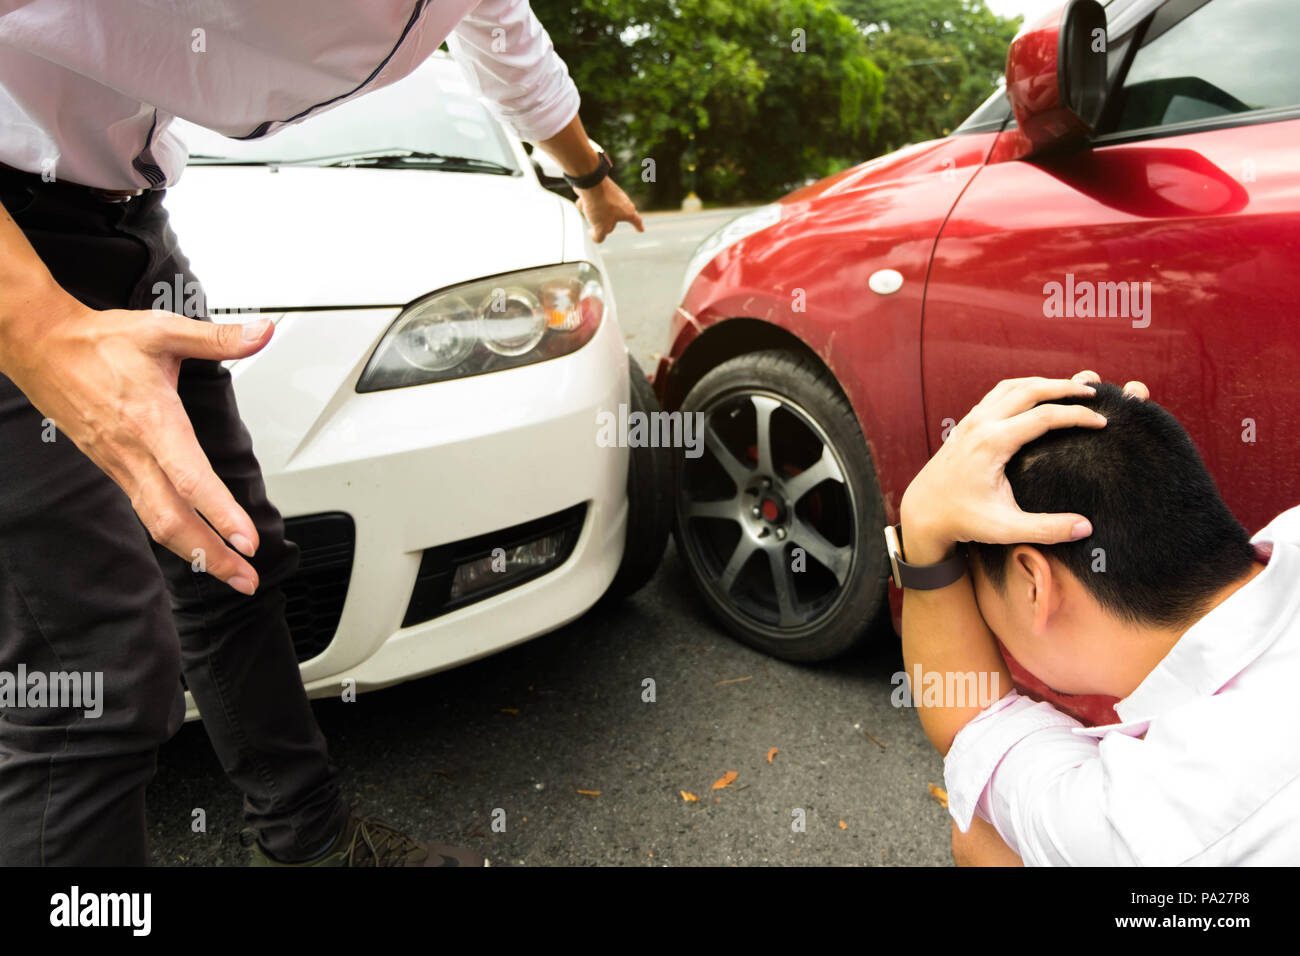 Accident de voiture sur la route ,attendre sinistre . Concept d'indemnité . Photo Stock